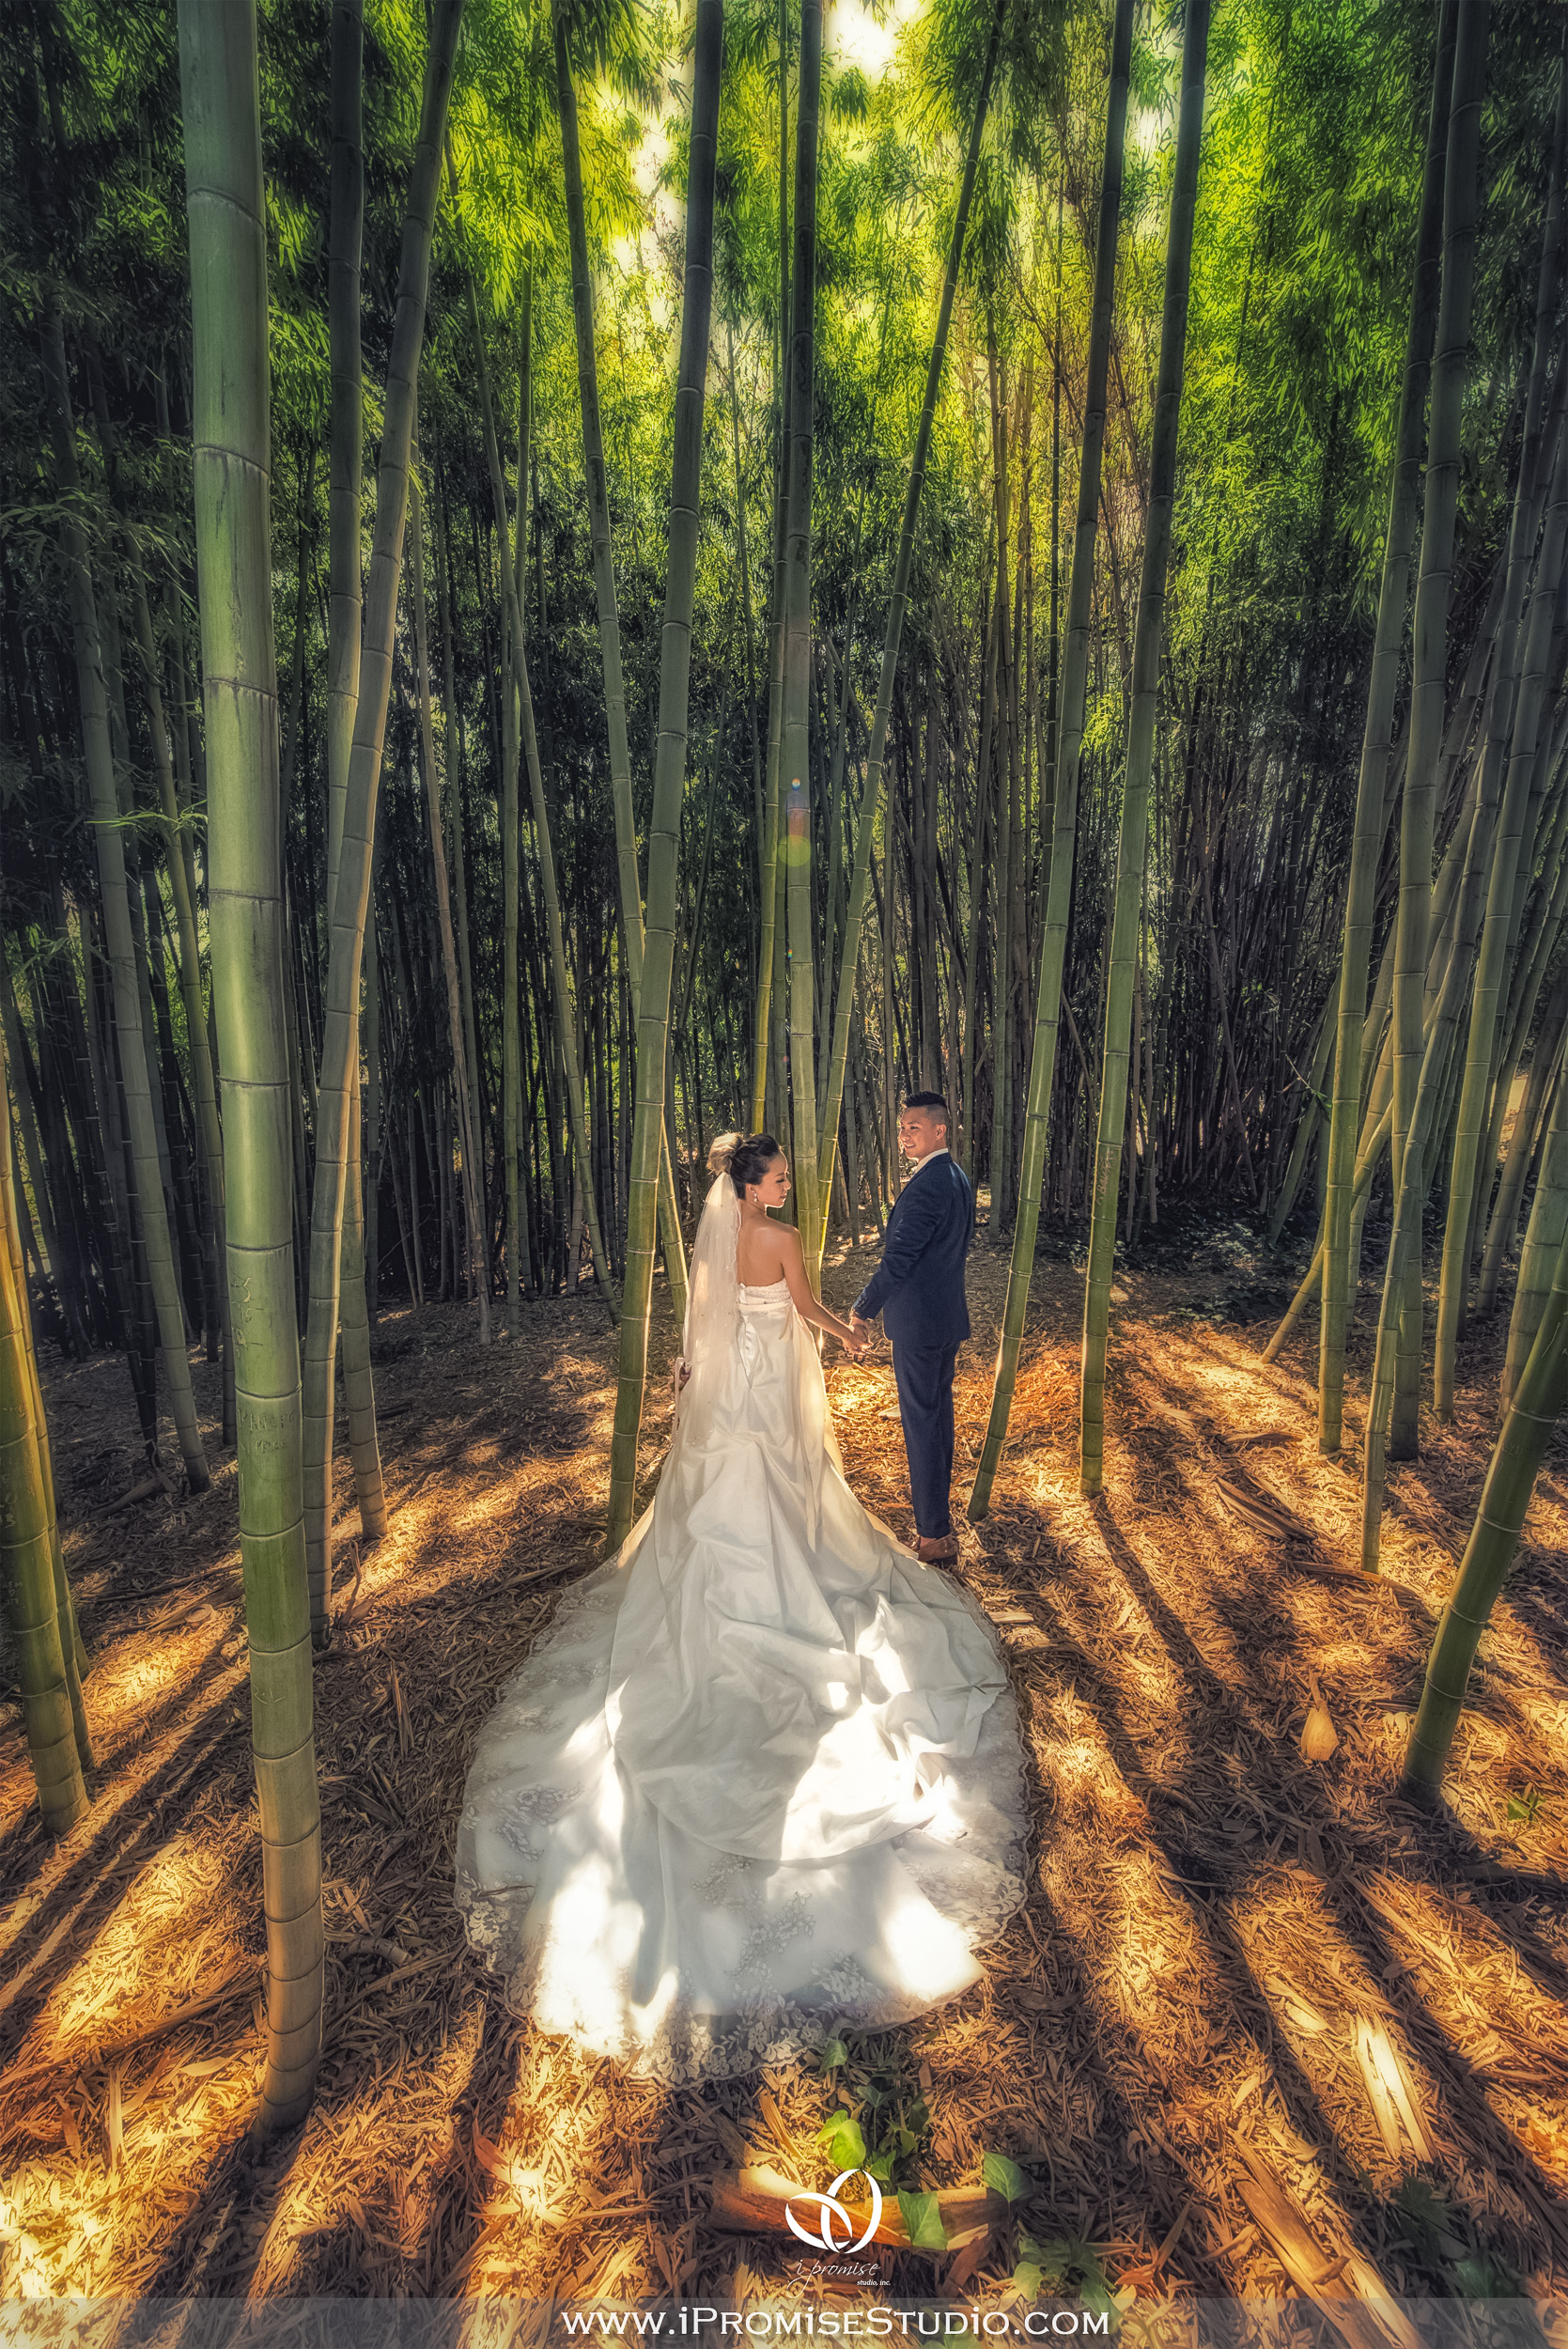 Arcadia Los Angeles County Arboretum and Botanic Garden Bamboo Field-engagement wedding 06.JPG